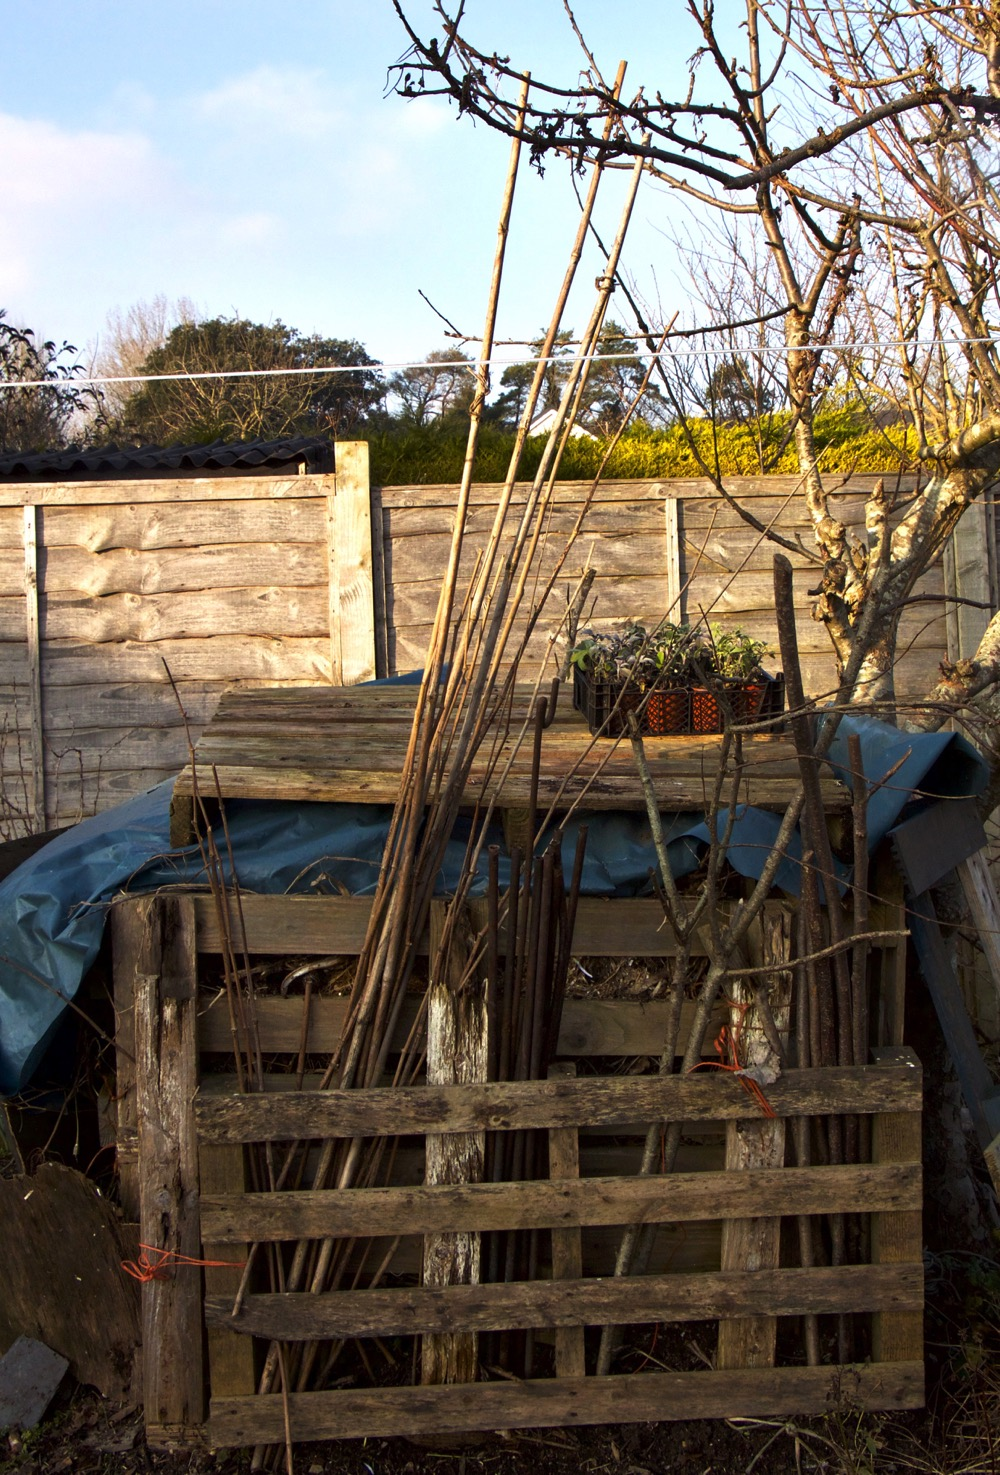 Pallet compost heap covered with recylced polythene to keep heat in (it is January) with a pallet on top in readiness for spring plants and storage area made from another pallet, for plant supports, canes, etc